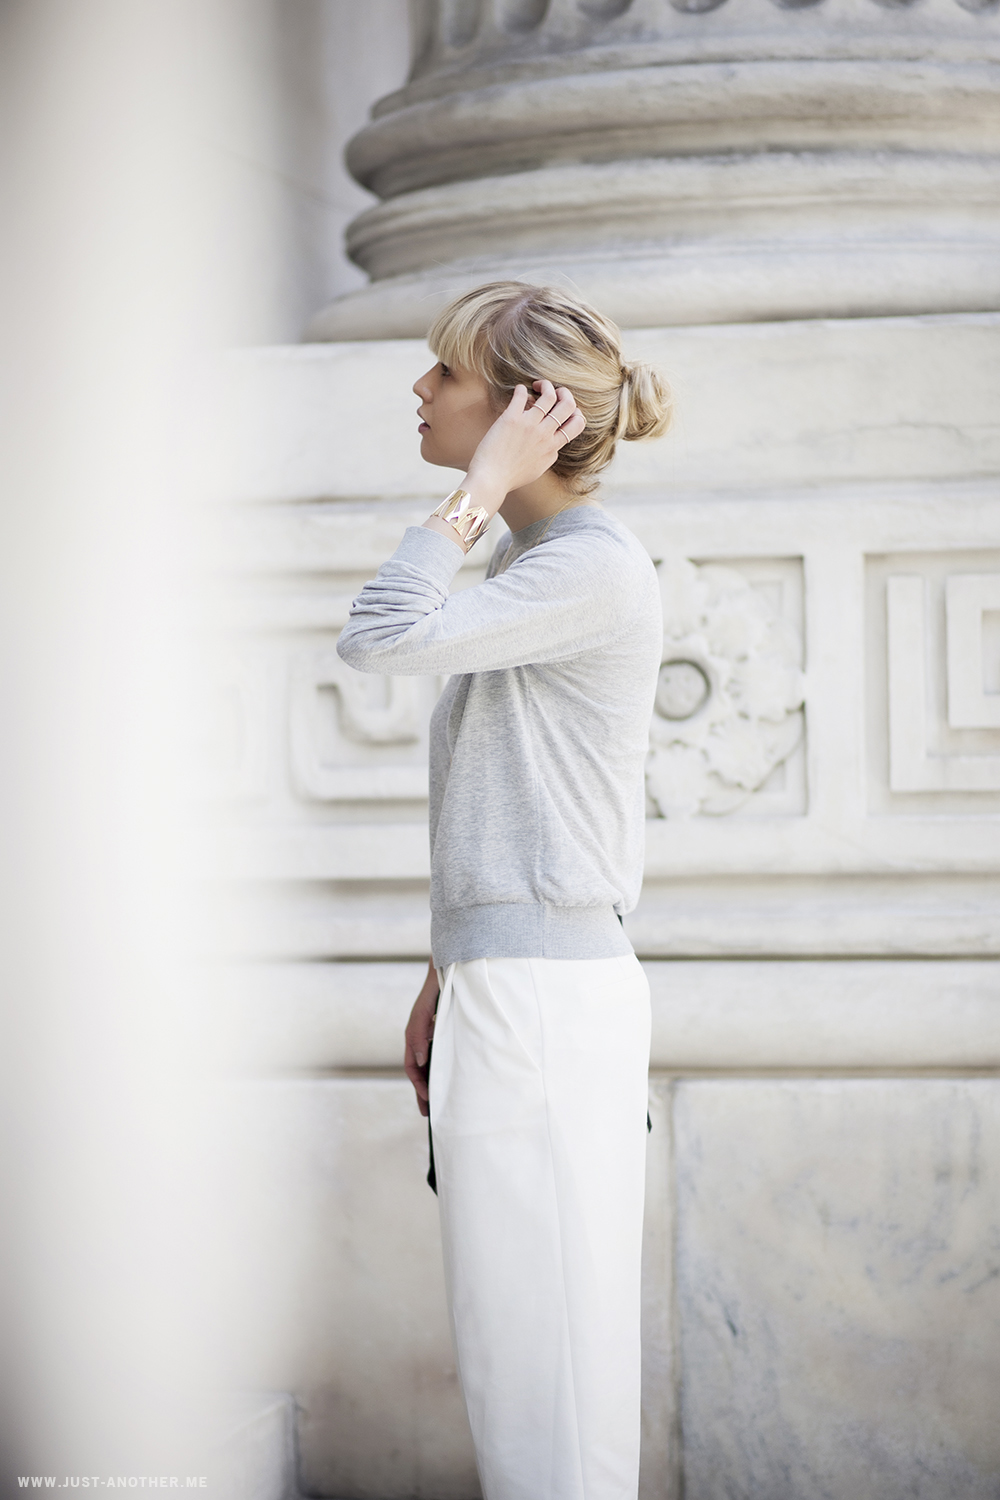 THE ATLAS® COLLECTION   Just Another Fashion Blog